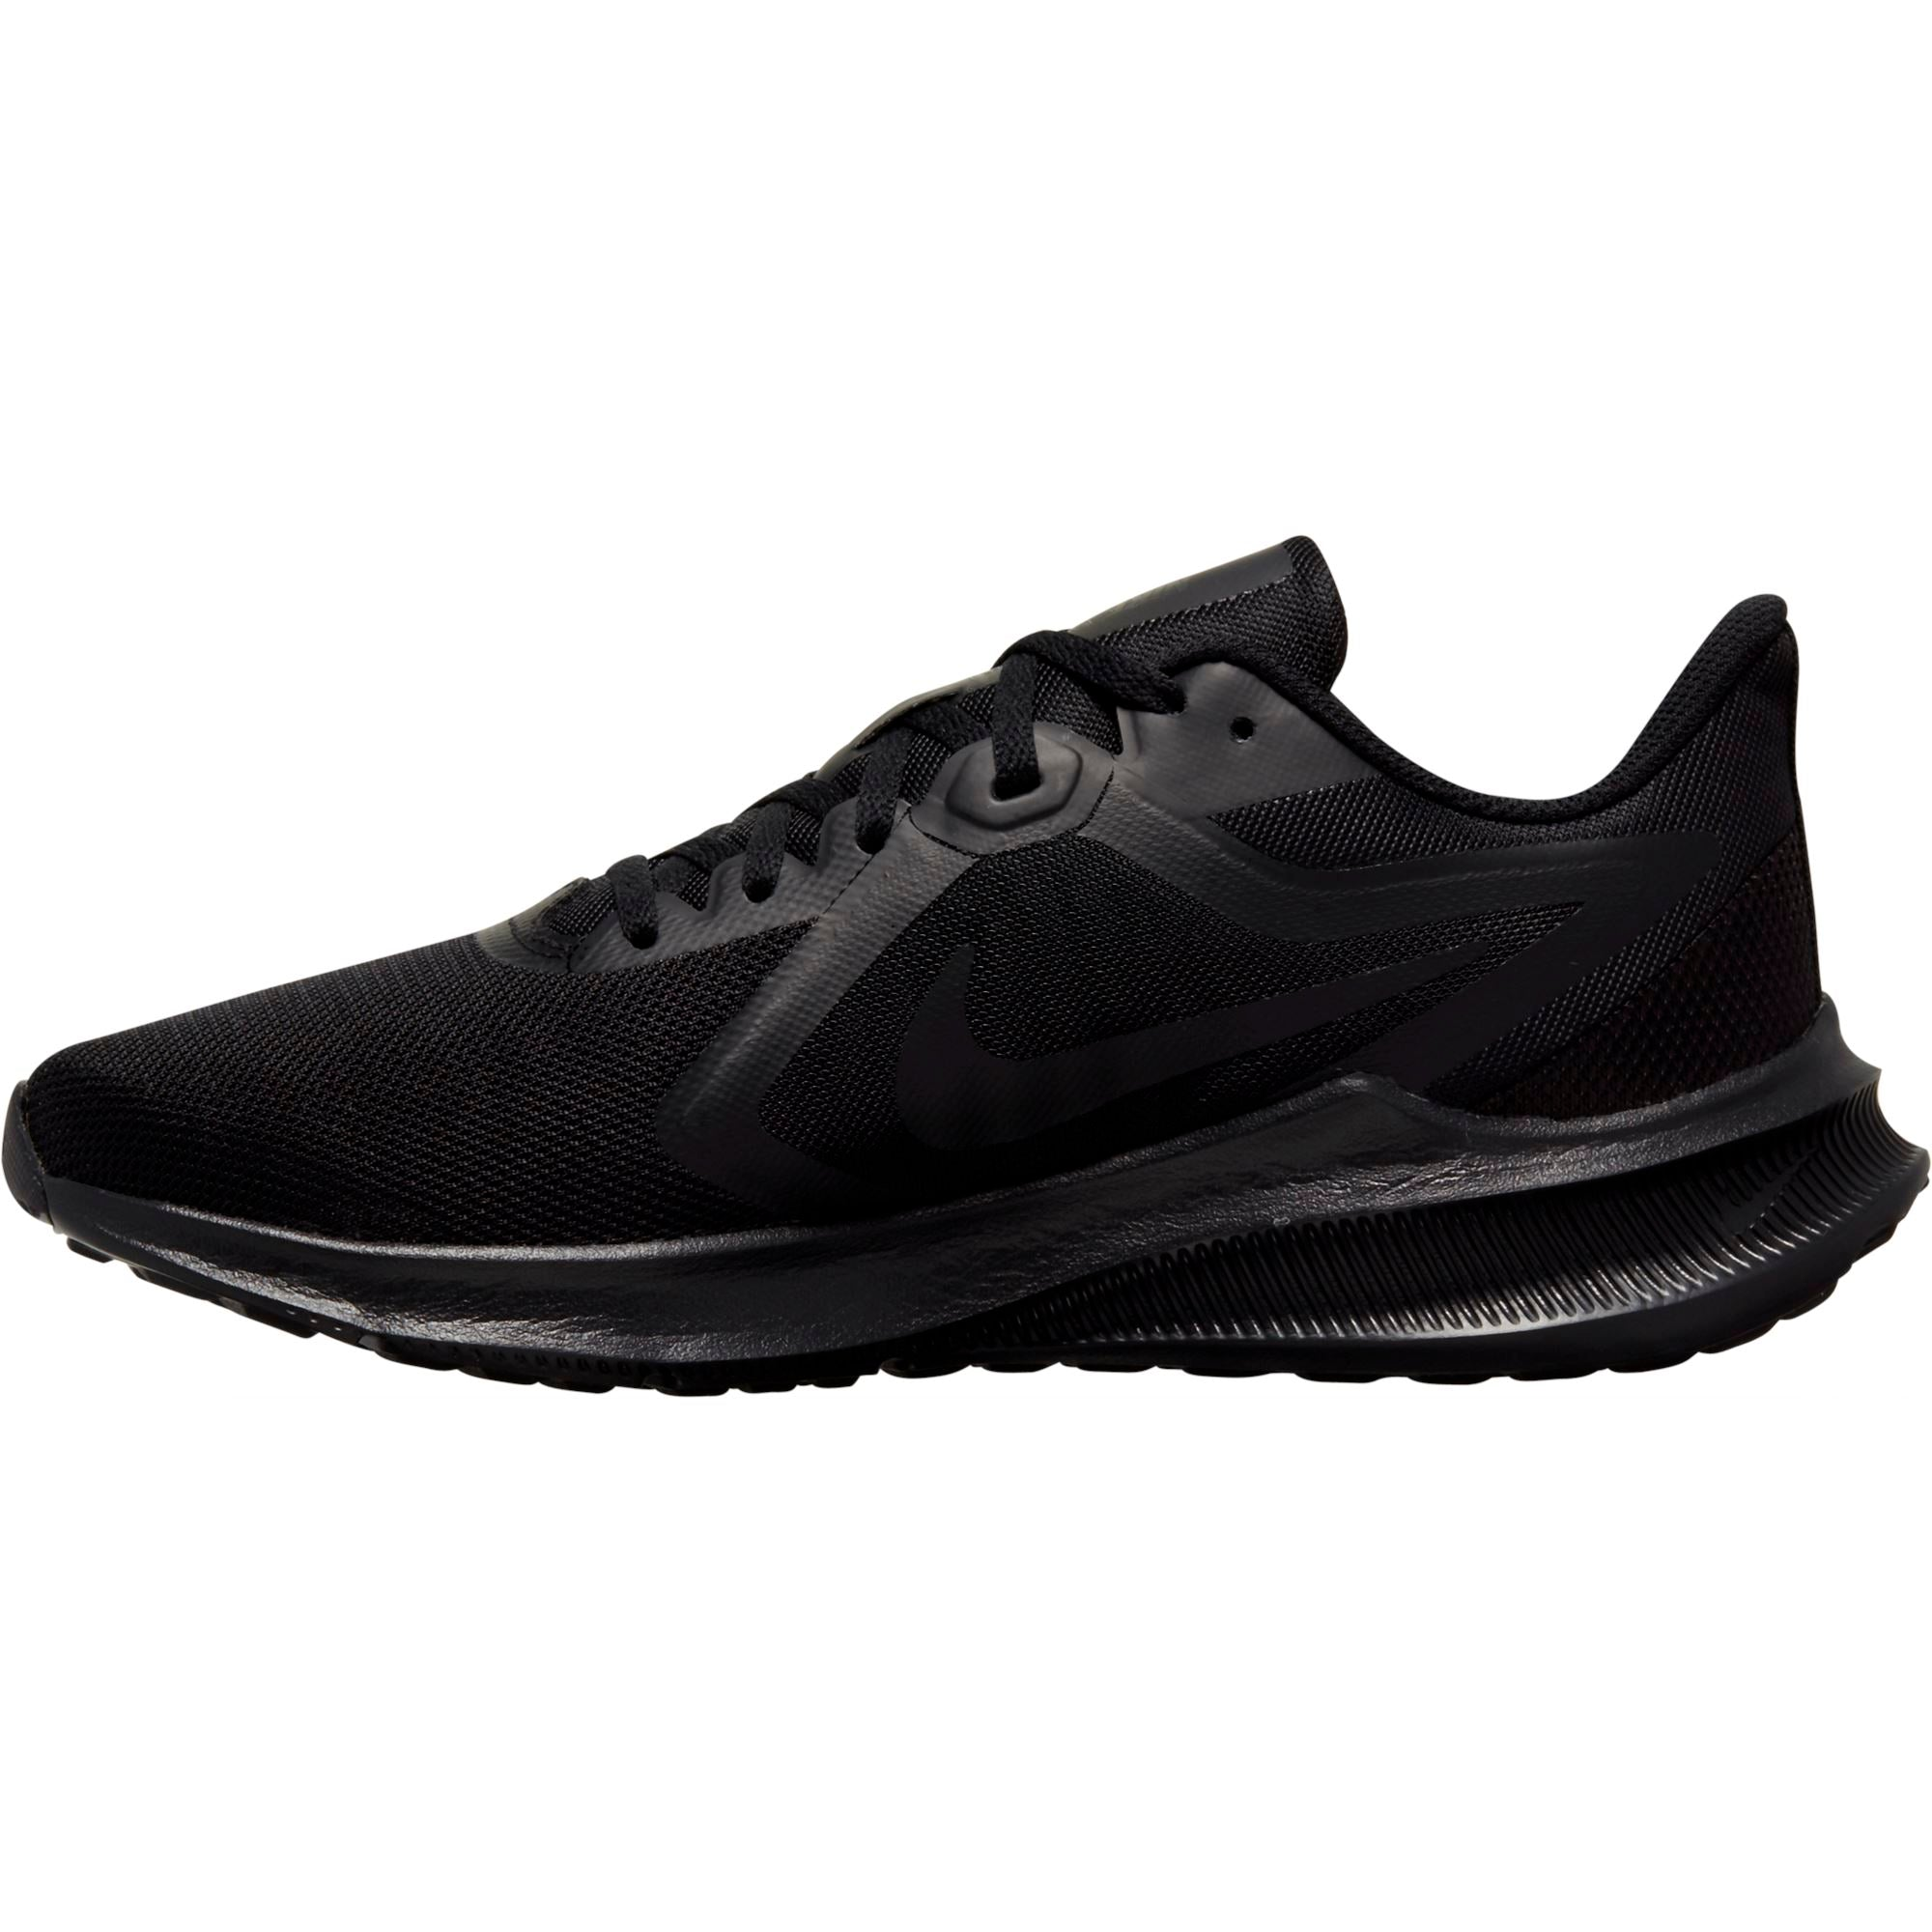 Nike Womens Downshifter 10 - Black/Black SP-Footwear-Womens Nike